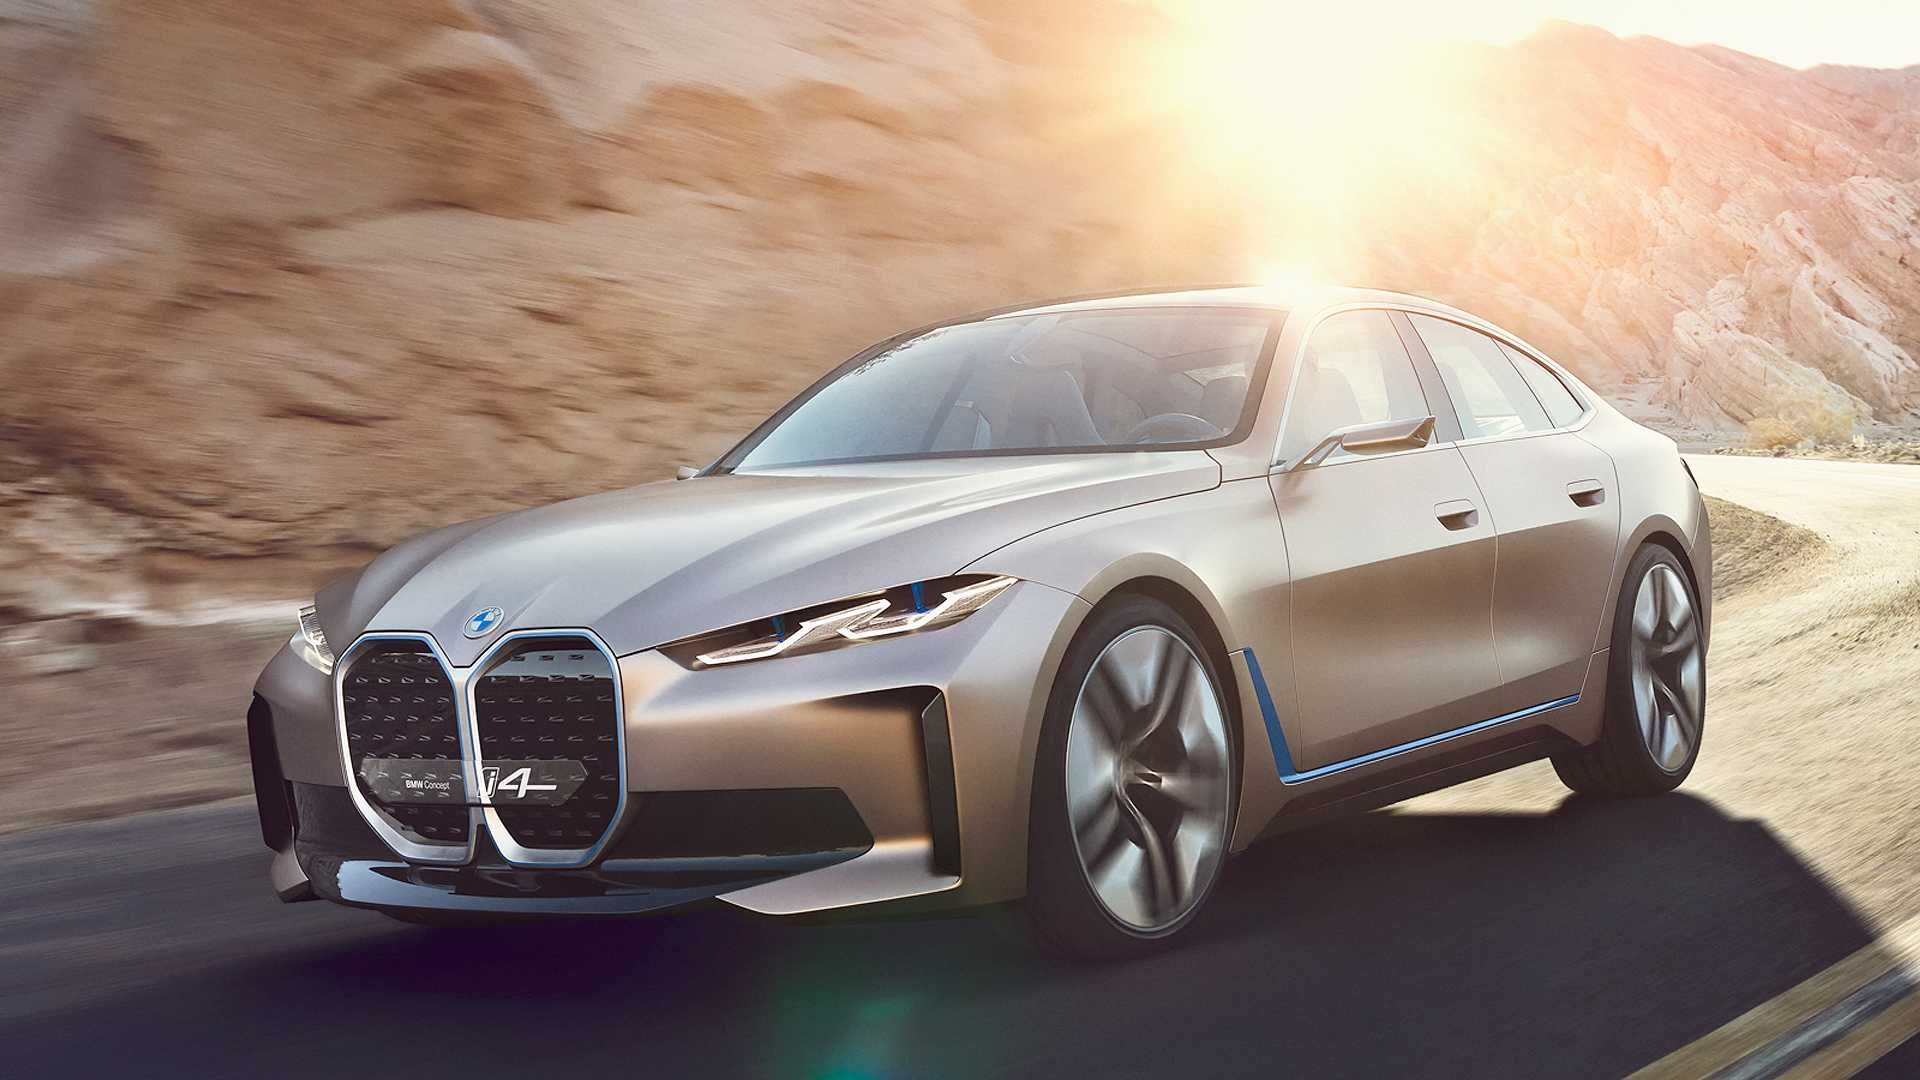 Bmw I4 Concept Revealed With 530 Hp 395 Kw And 600km Range In